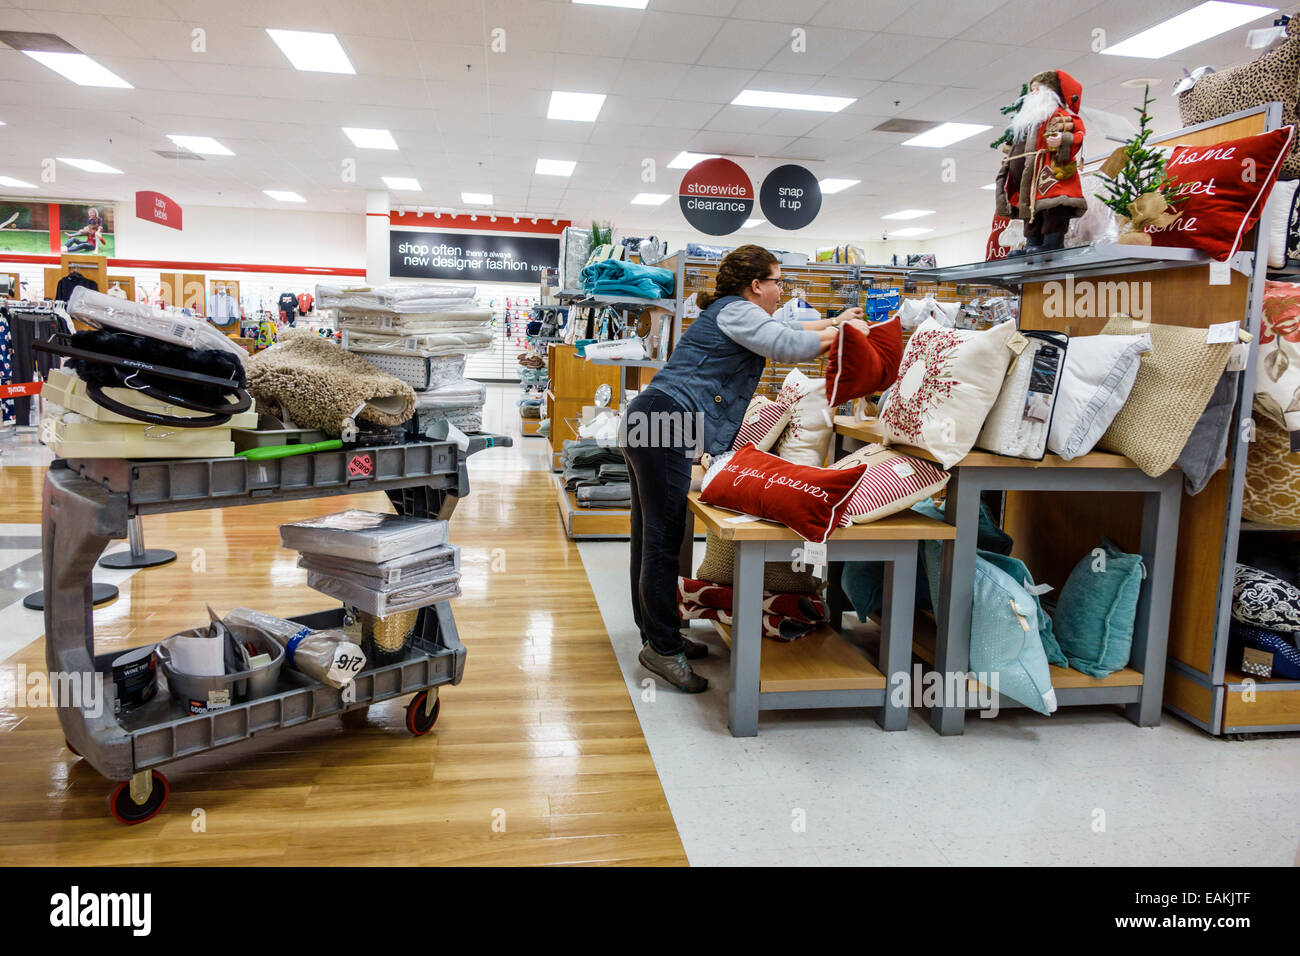 HomeGoods stores offer an ever-changing selection of unique home fashions in kitchen essentials, rugs, lighting, bedding, bath, furniture and more all at up to 60% off department and specialty store .